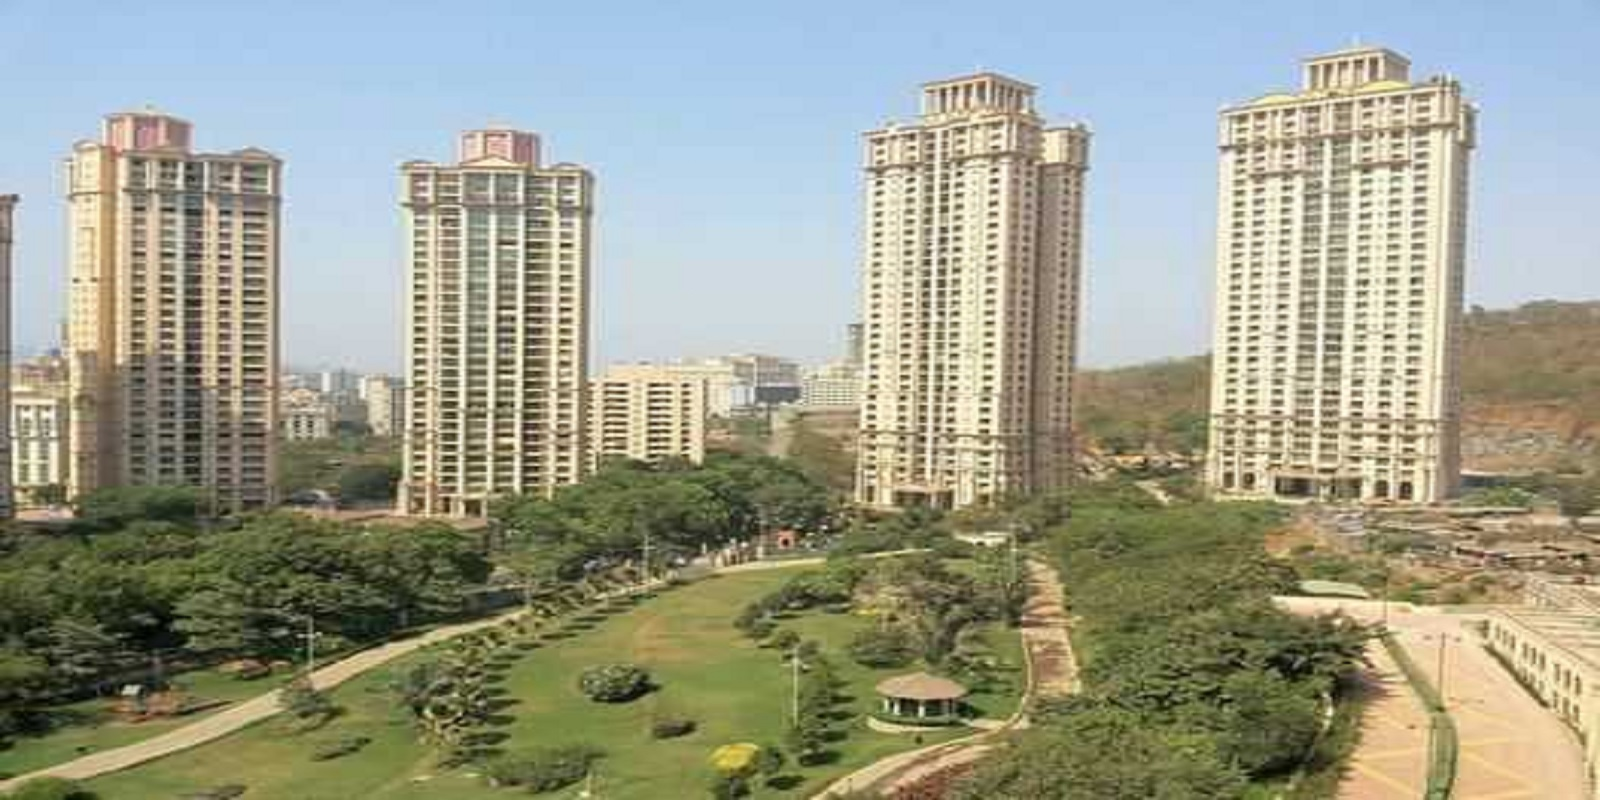 hiranandani gardens glen height project project large image1